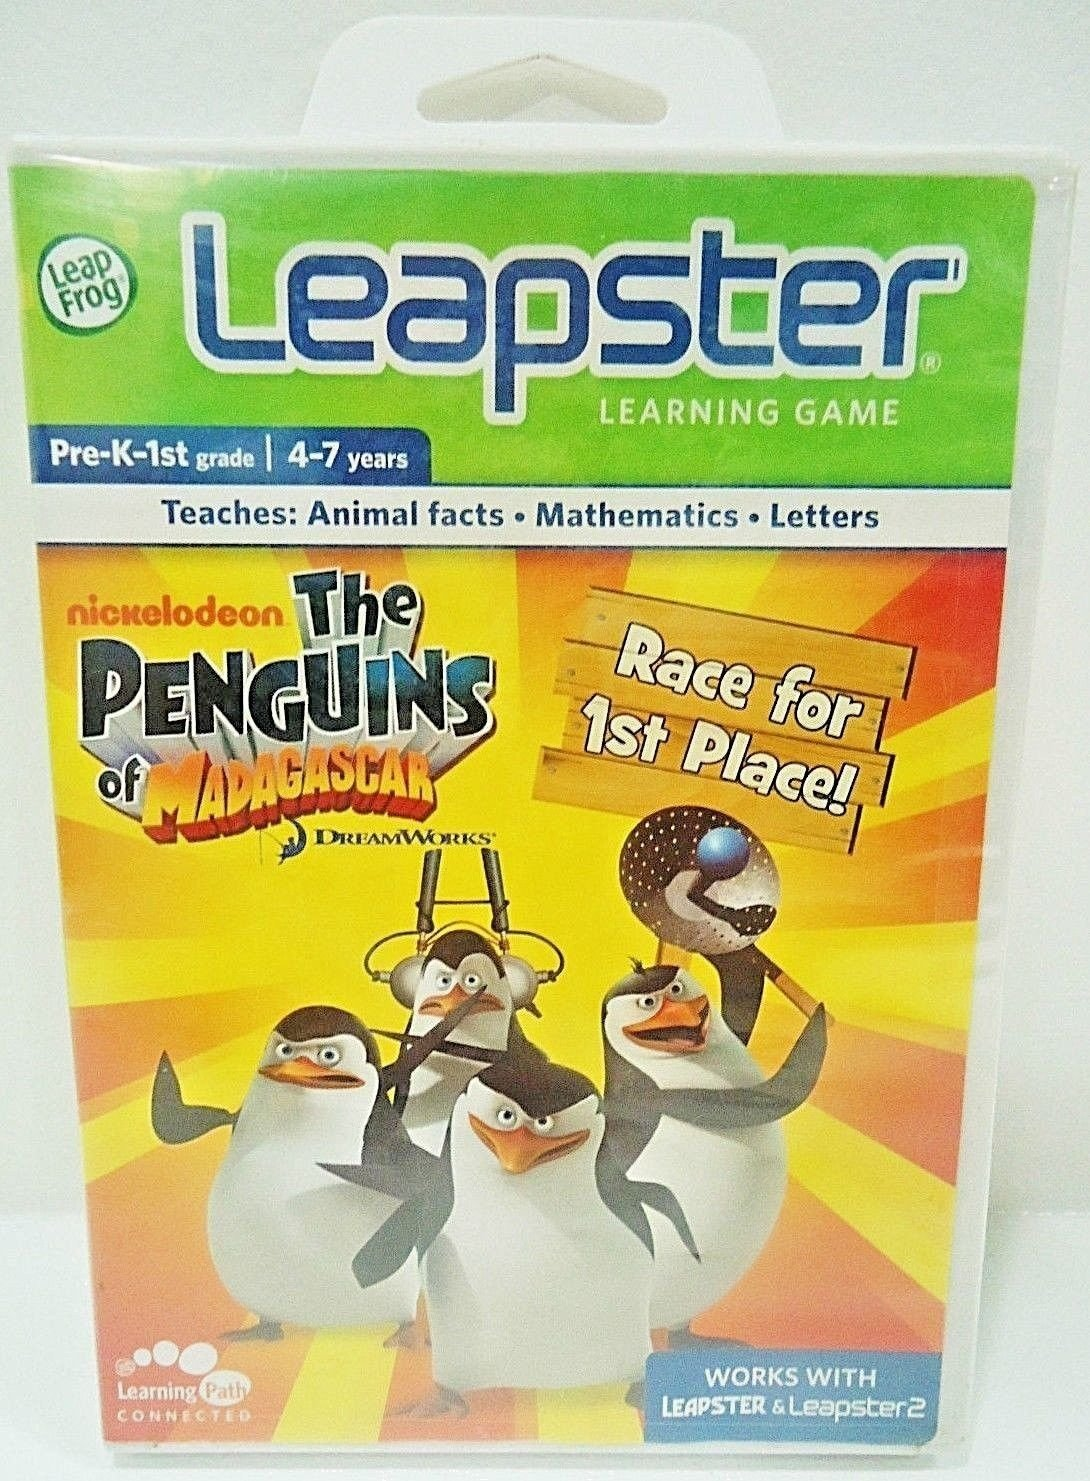 LEAP FROG - LEAPSTER - MADAGASCAR - PRE-K - 1ST GRADE - LEARNING GAME - NEW